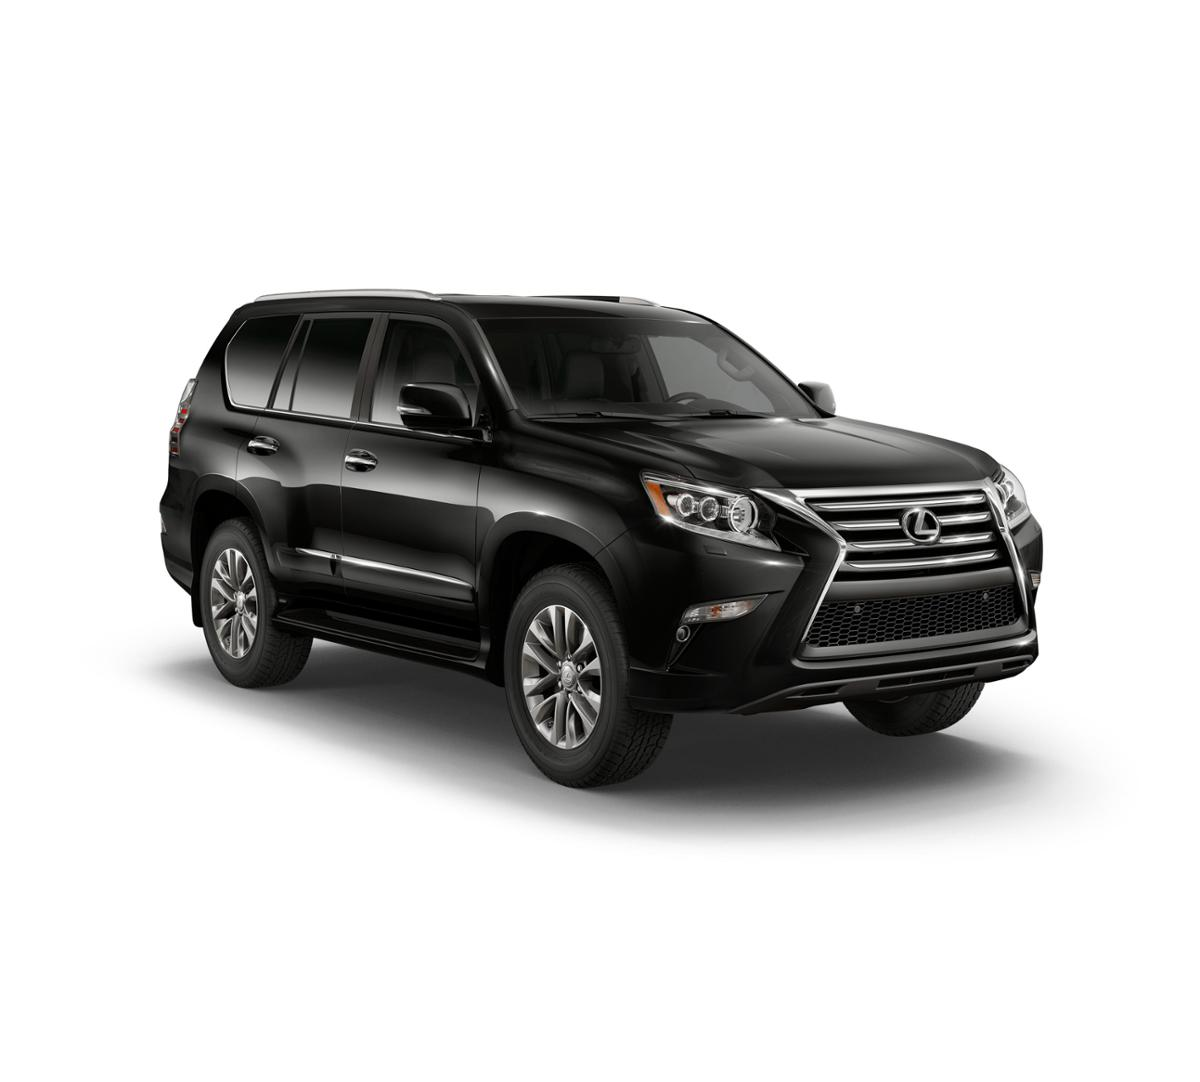 2018 Lexus GX 460 Vehicle Photo in Santa Monica, CA 90404